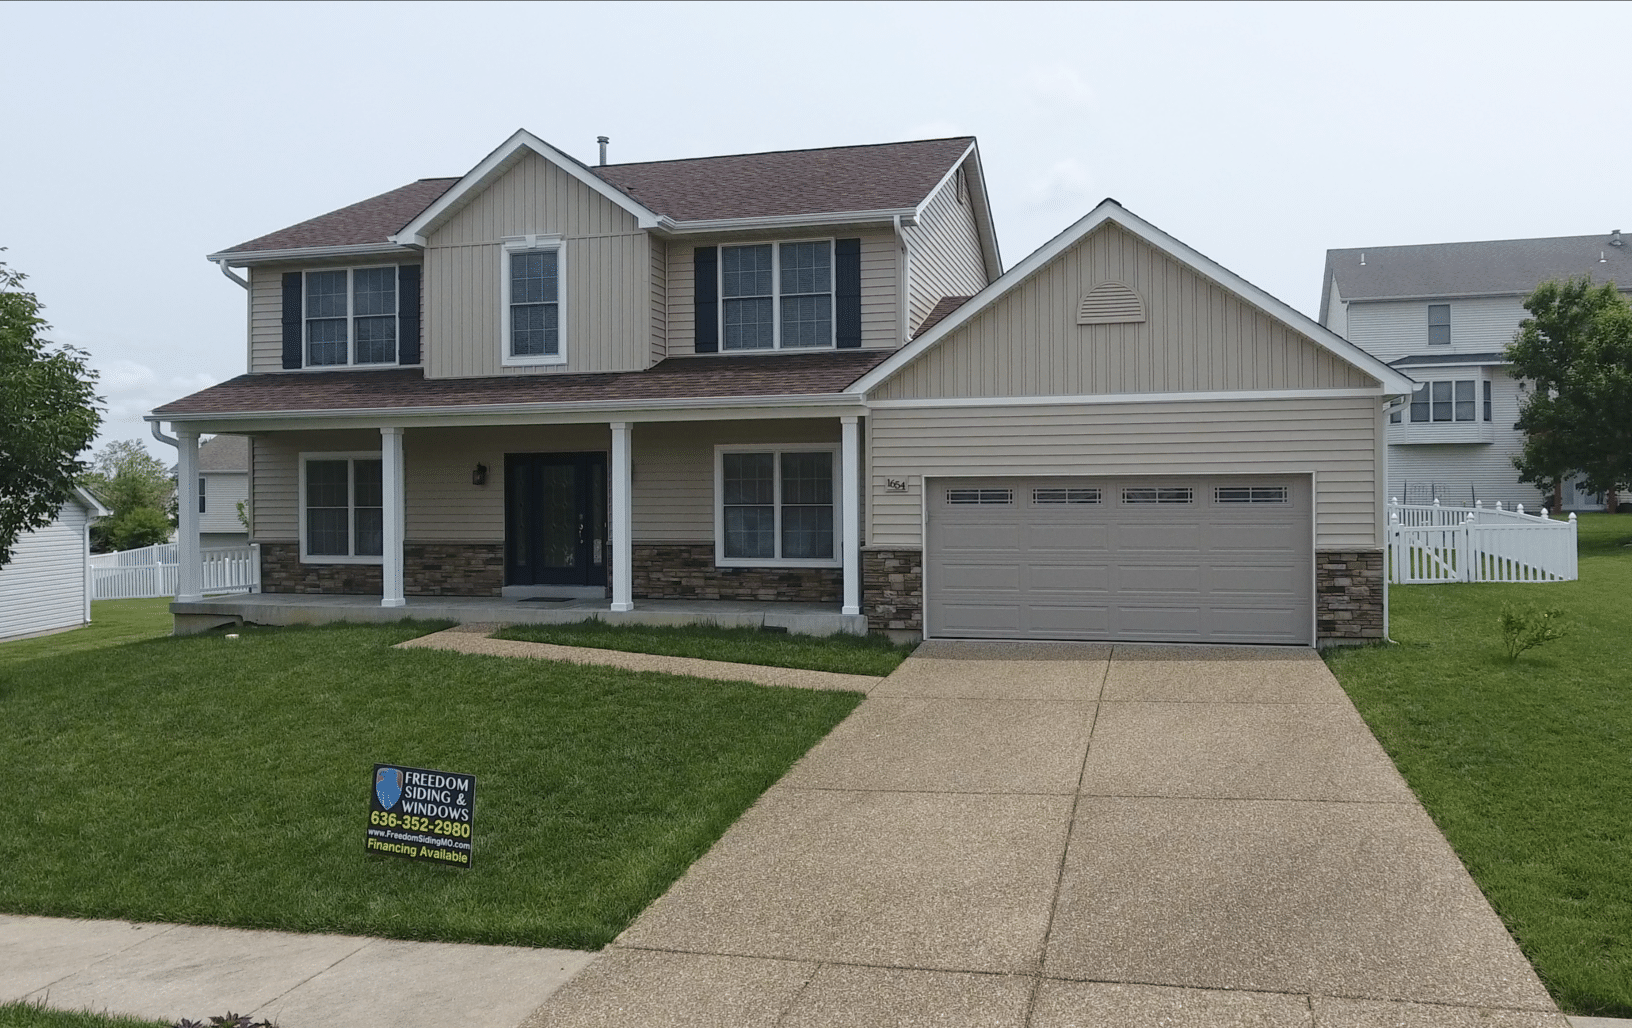 Total Exterior Remodel in Wentzville, MO! - After Photo